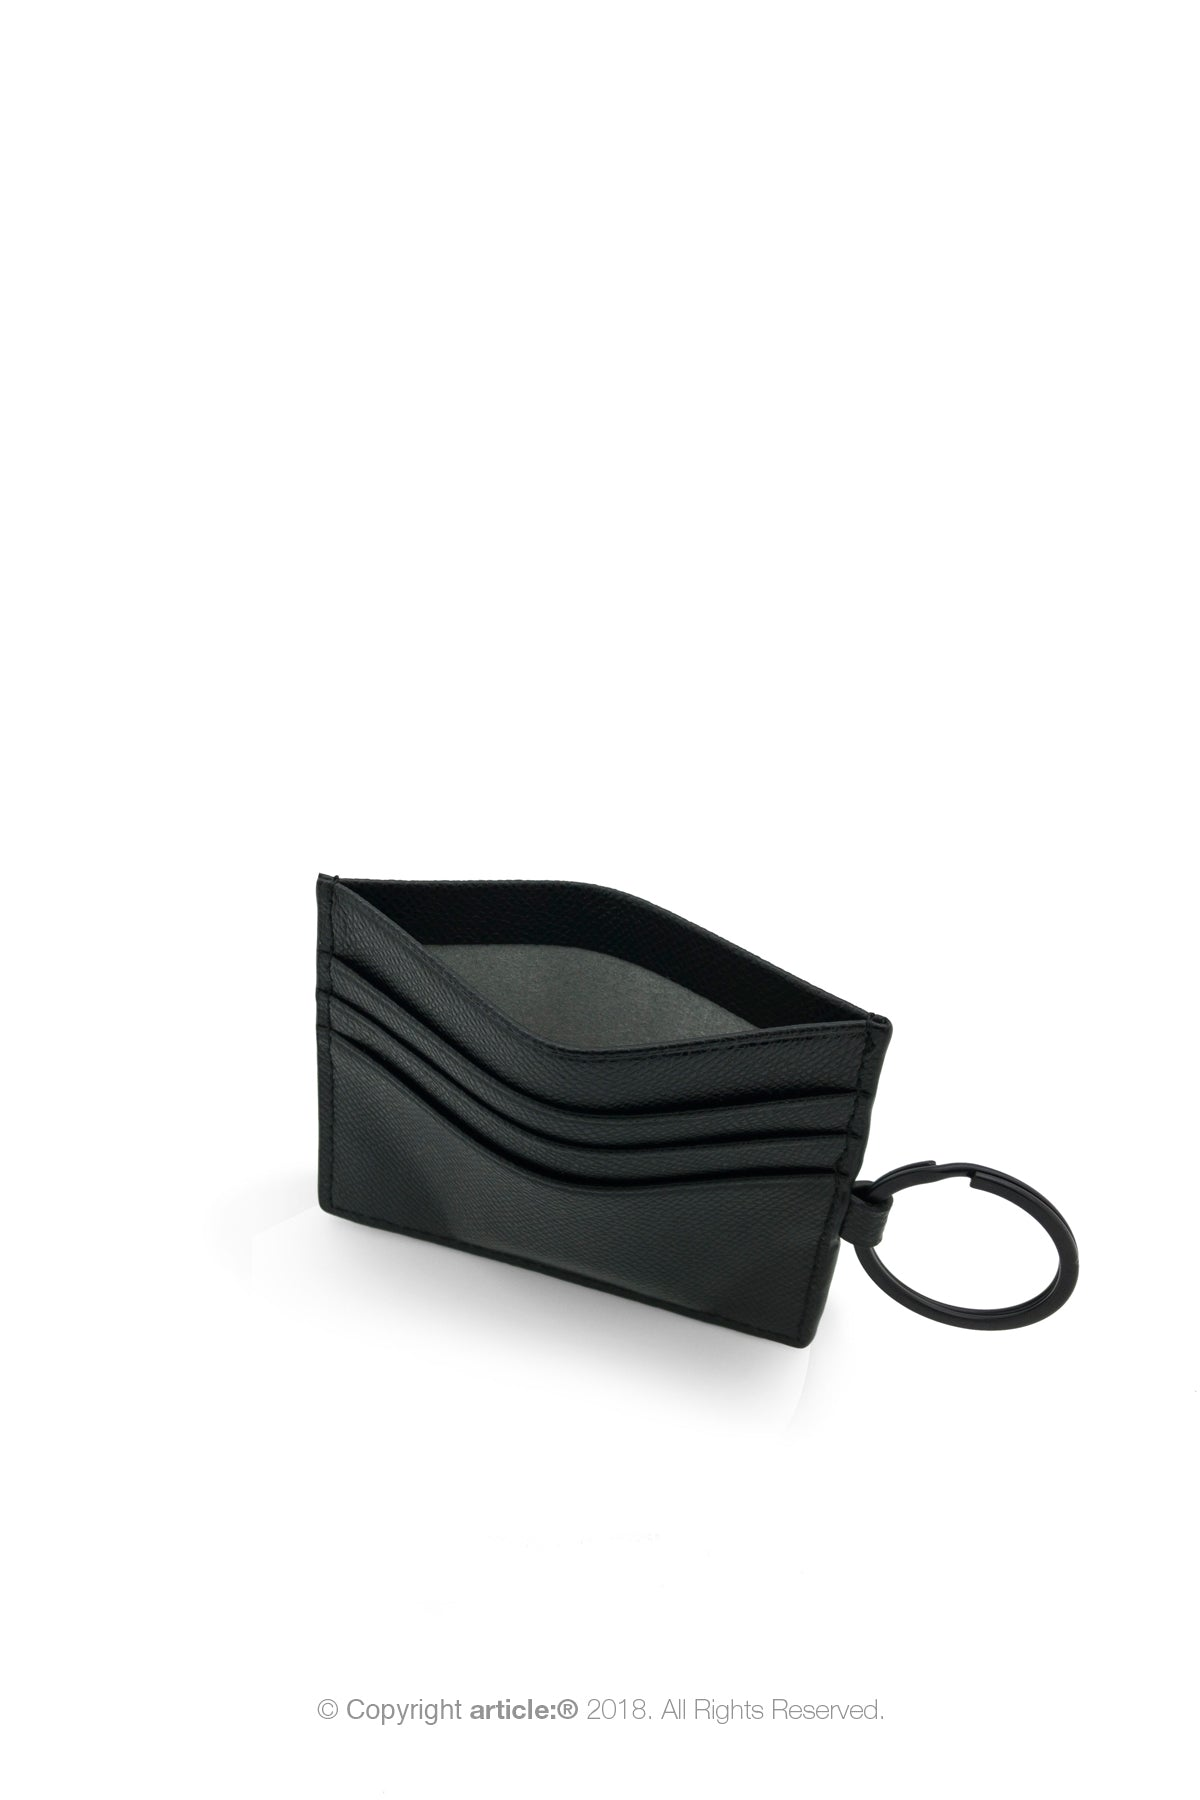 article: #200 Card Holder Men - Noir